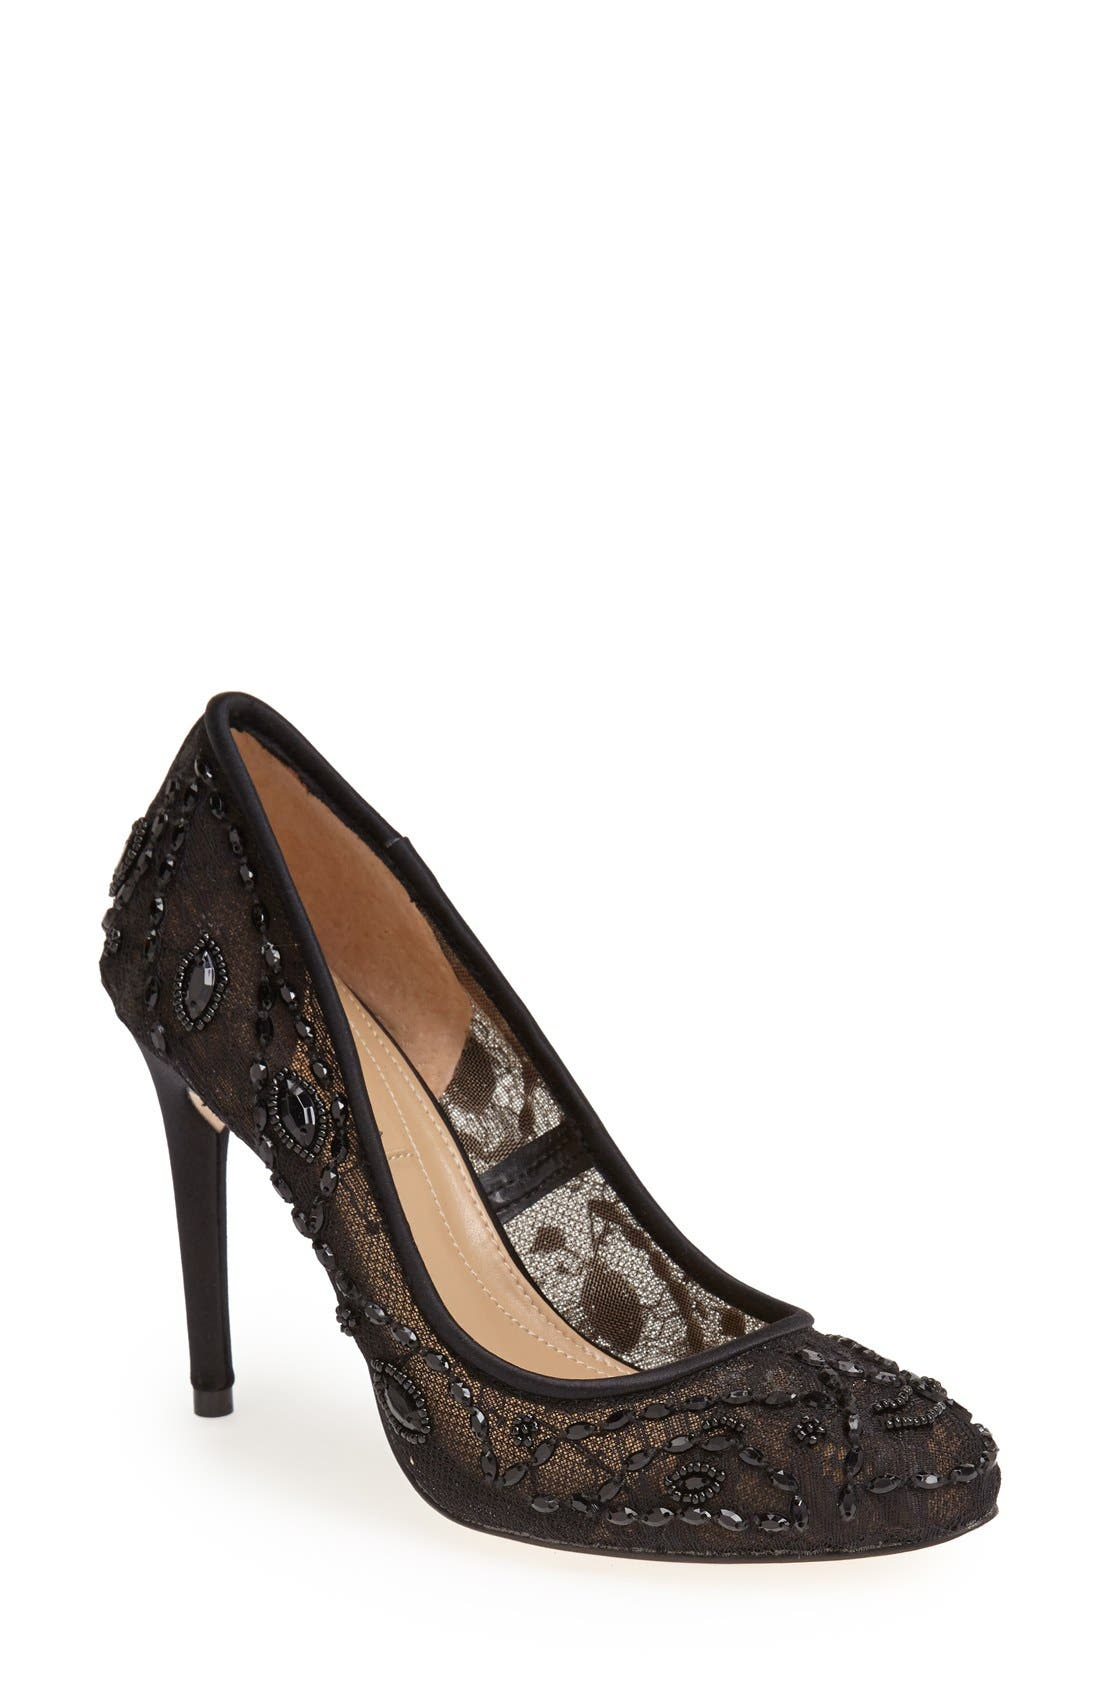 Alternate Image 1 Selected - BCBGMAXAZRIA 'Bettie' Pump (Women)